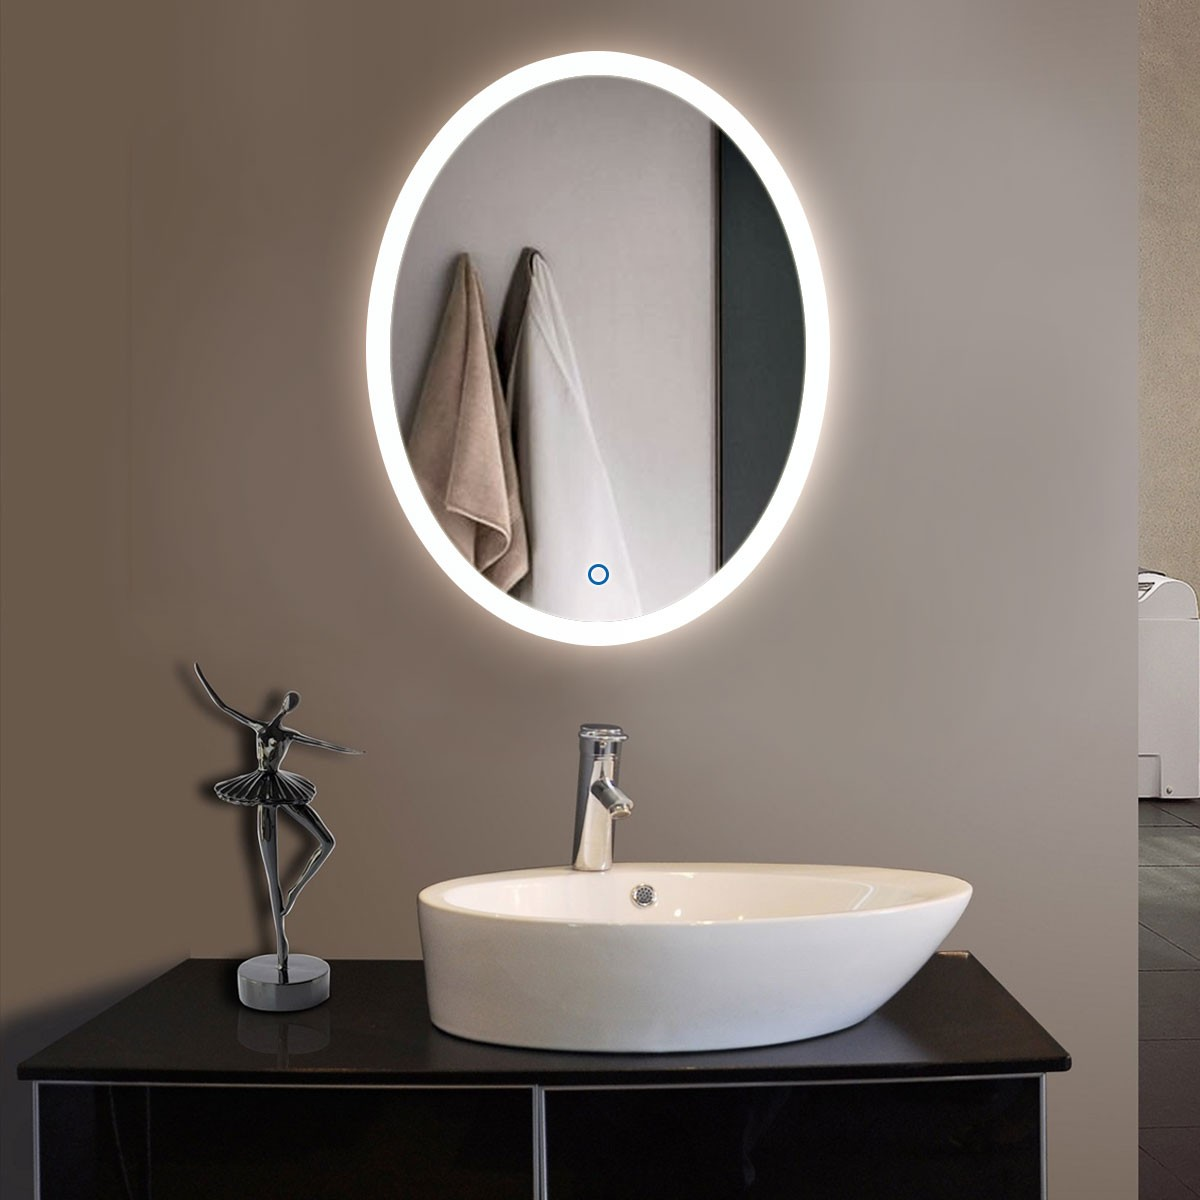 24 x 32 In Vertical Oval LED Bathroom Silvered Mirror with